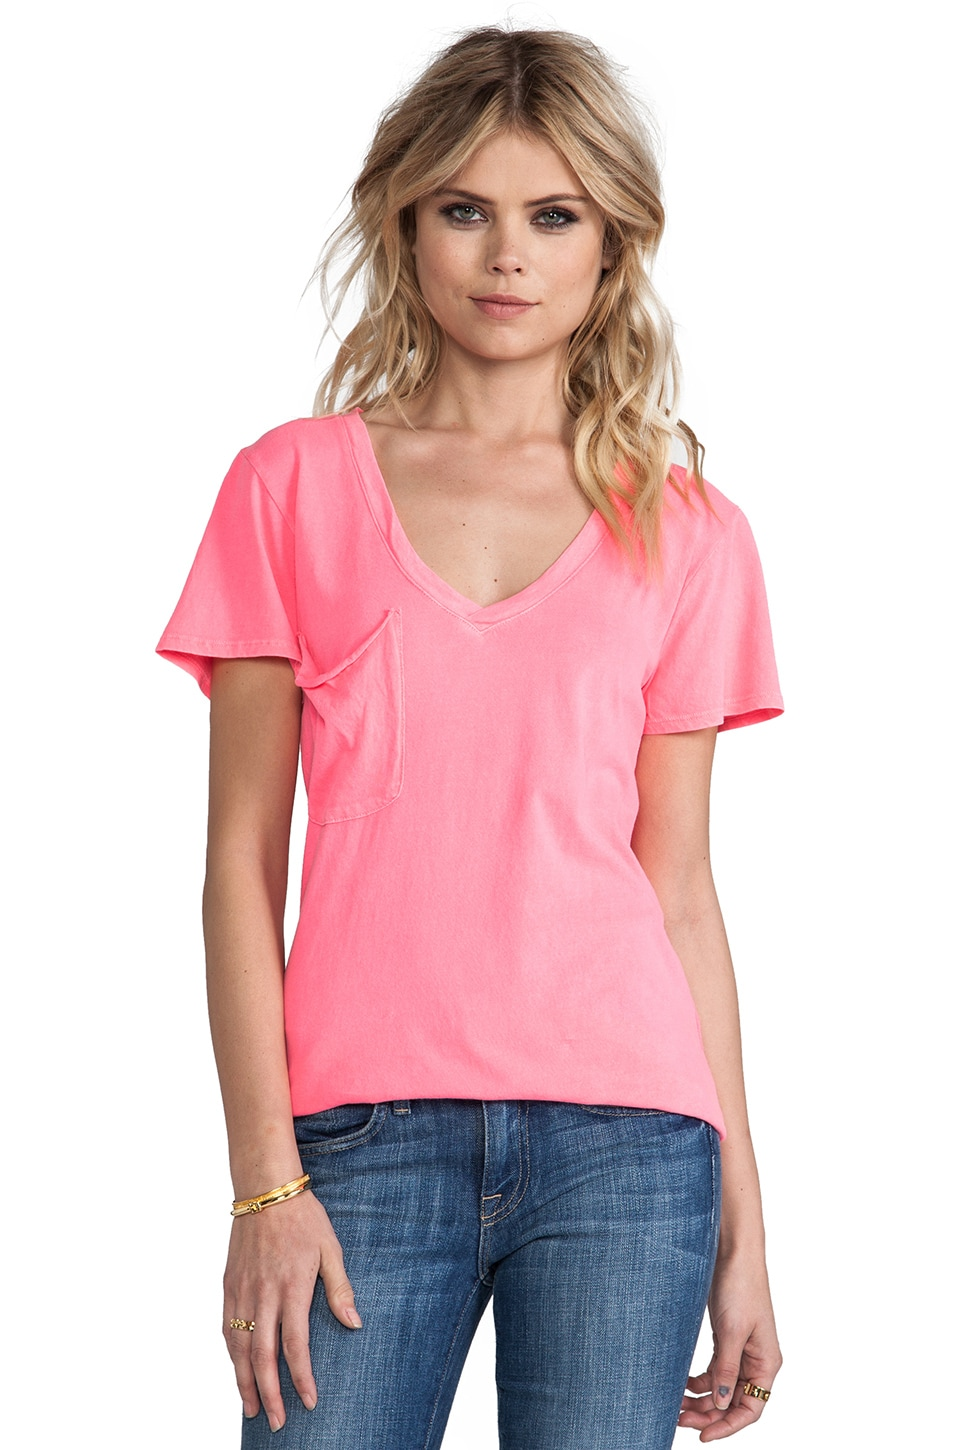 Bobi Light Weight Jersey V Neck Pocket Tee in Neon Candy